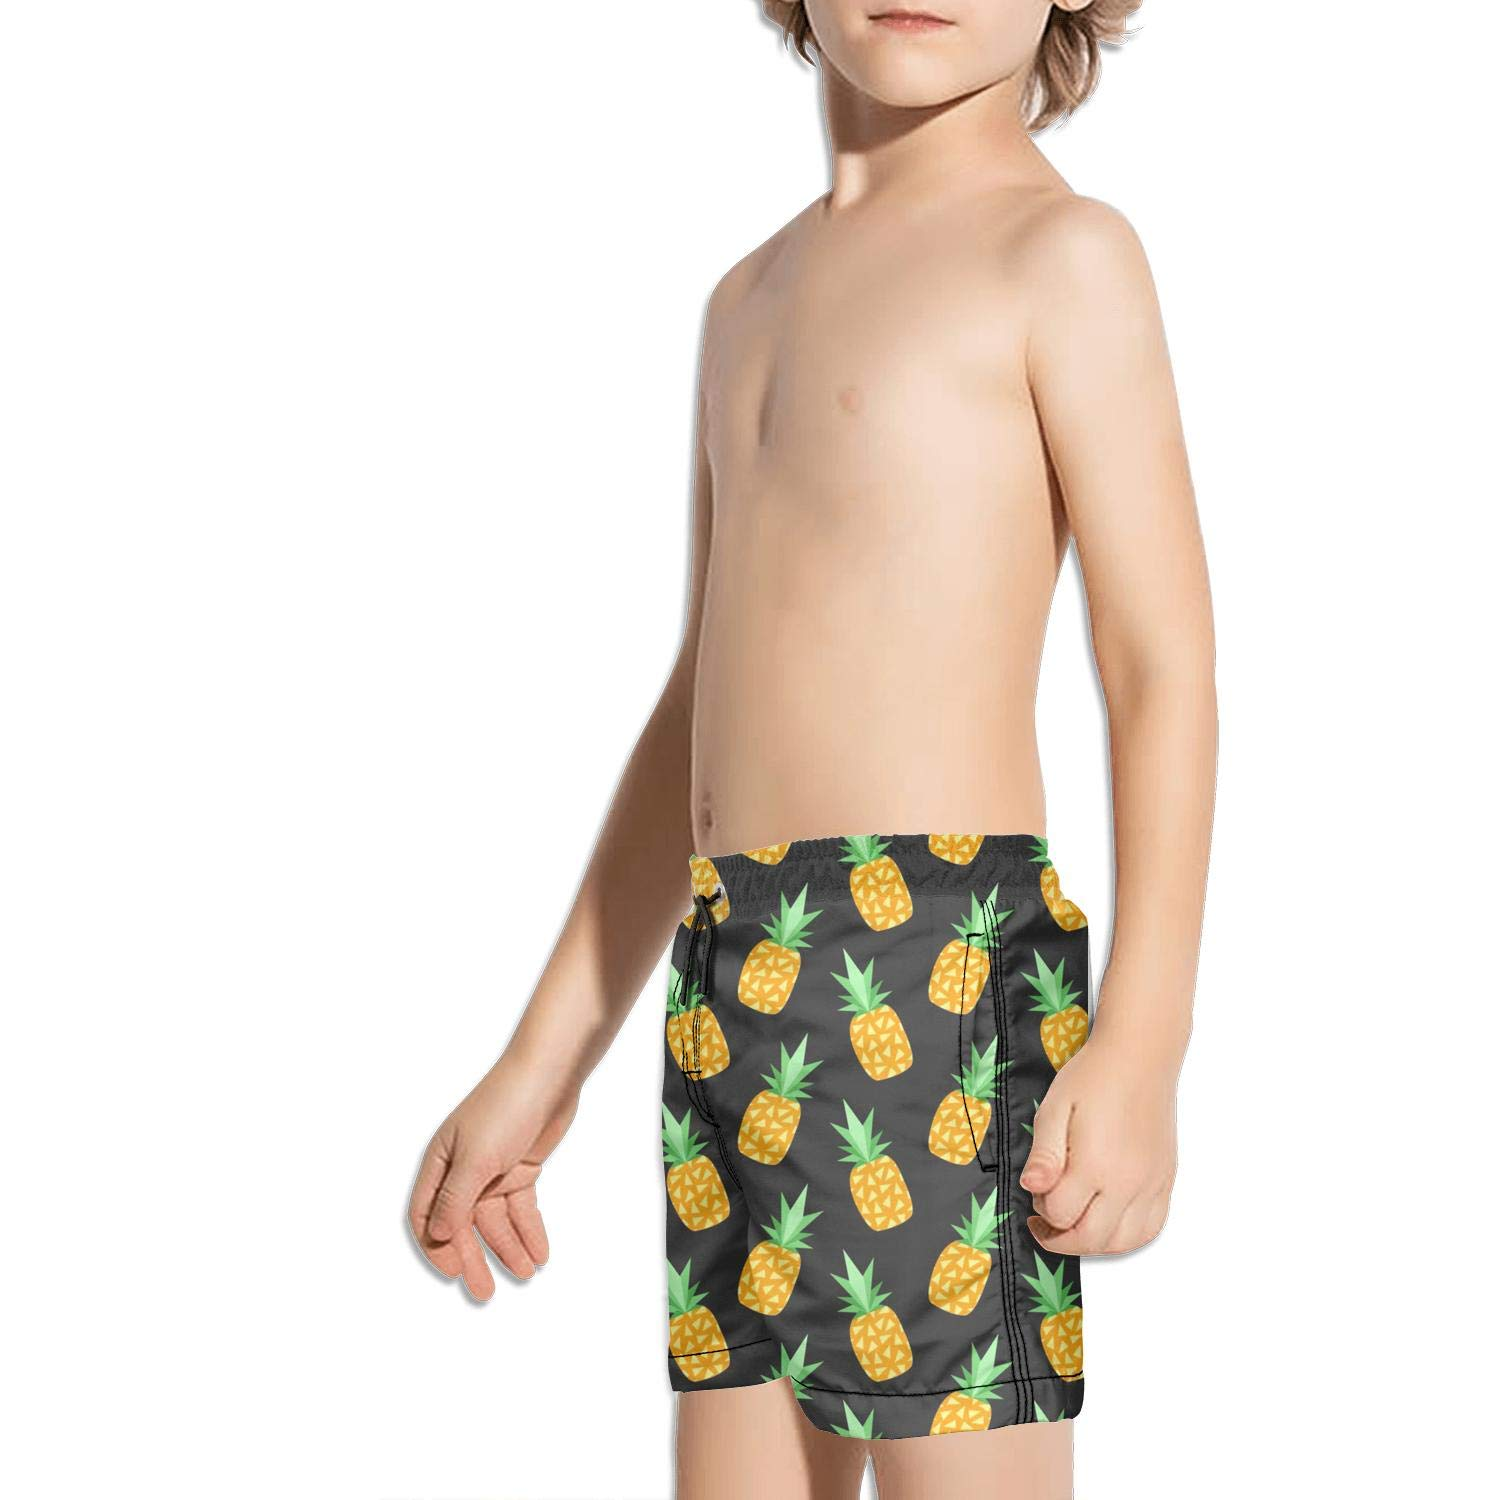 Pineapple Print Decor NAIT.2 Shorts Swimming Tucks for Kid Quick Dry Solid Board Adjustable Swimming Tucks Reusable Workout